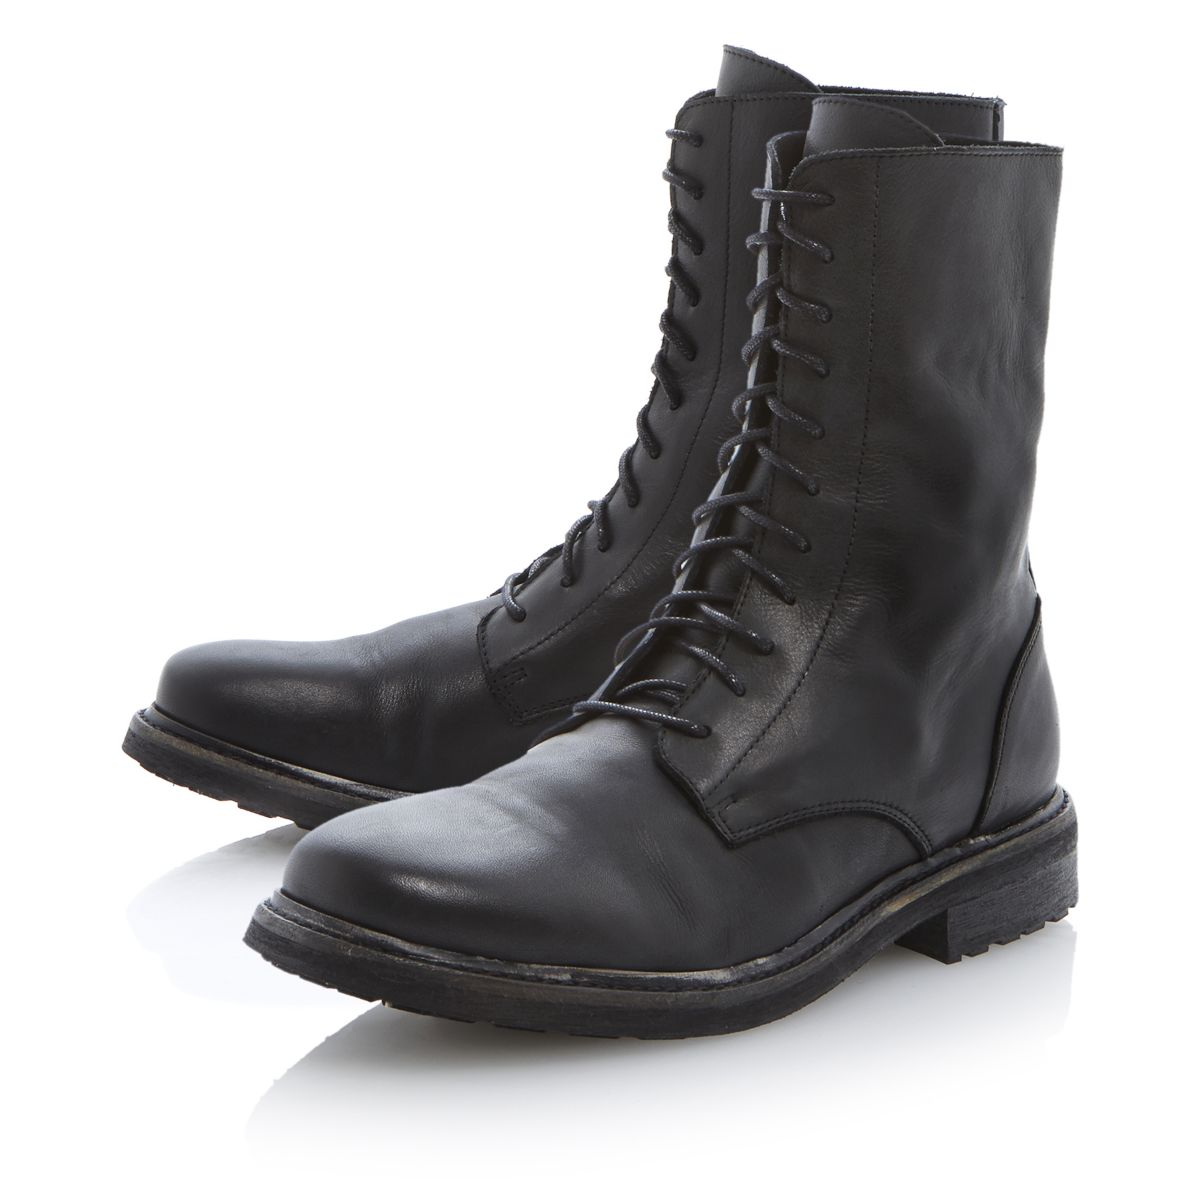 Mens Lace Up Leather Boots | Santa Barbara Institute for